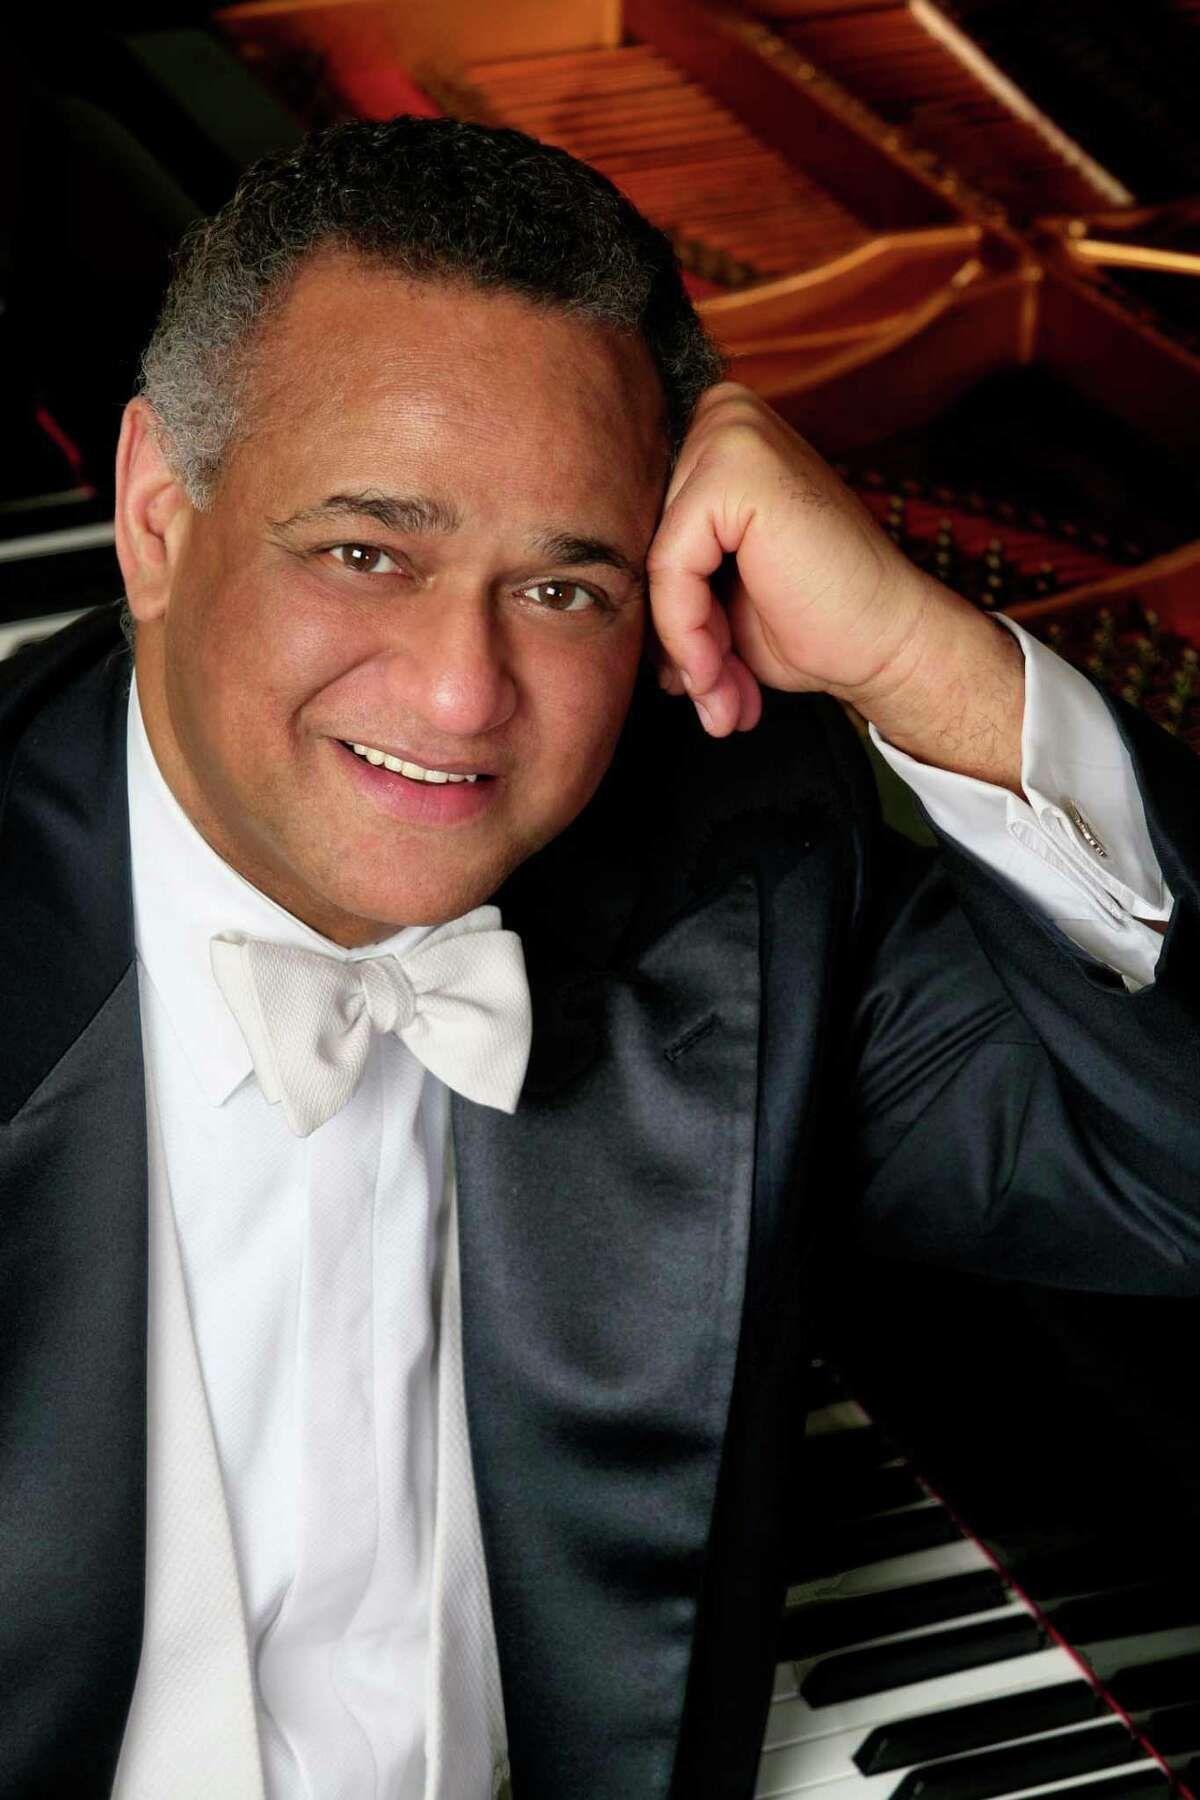 André Watts has appeared several times with the San Antonio Symphony since the 1970s, the last time in 2005. On Friday, he delivered another concerto to remember.